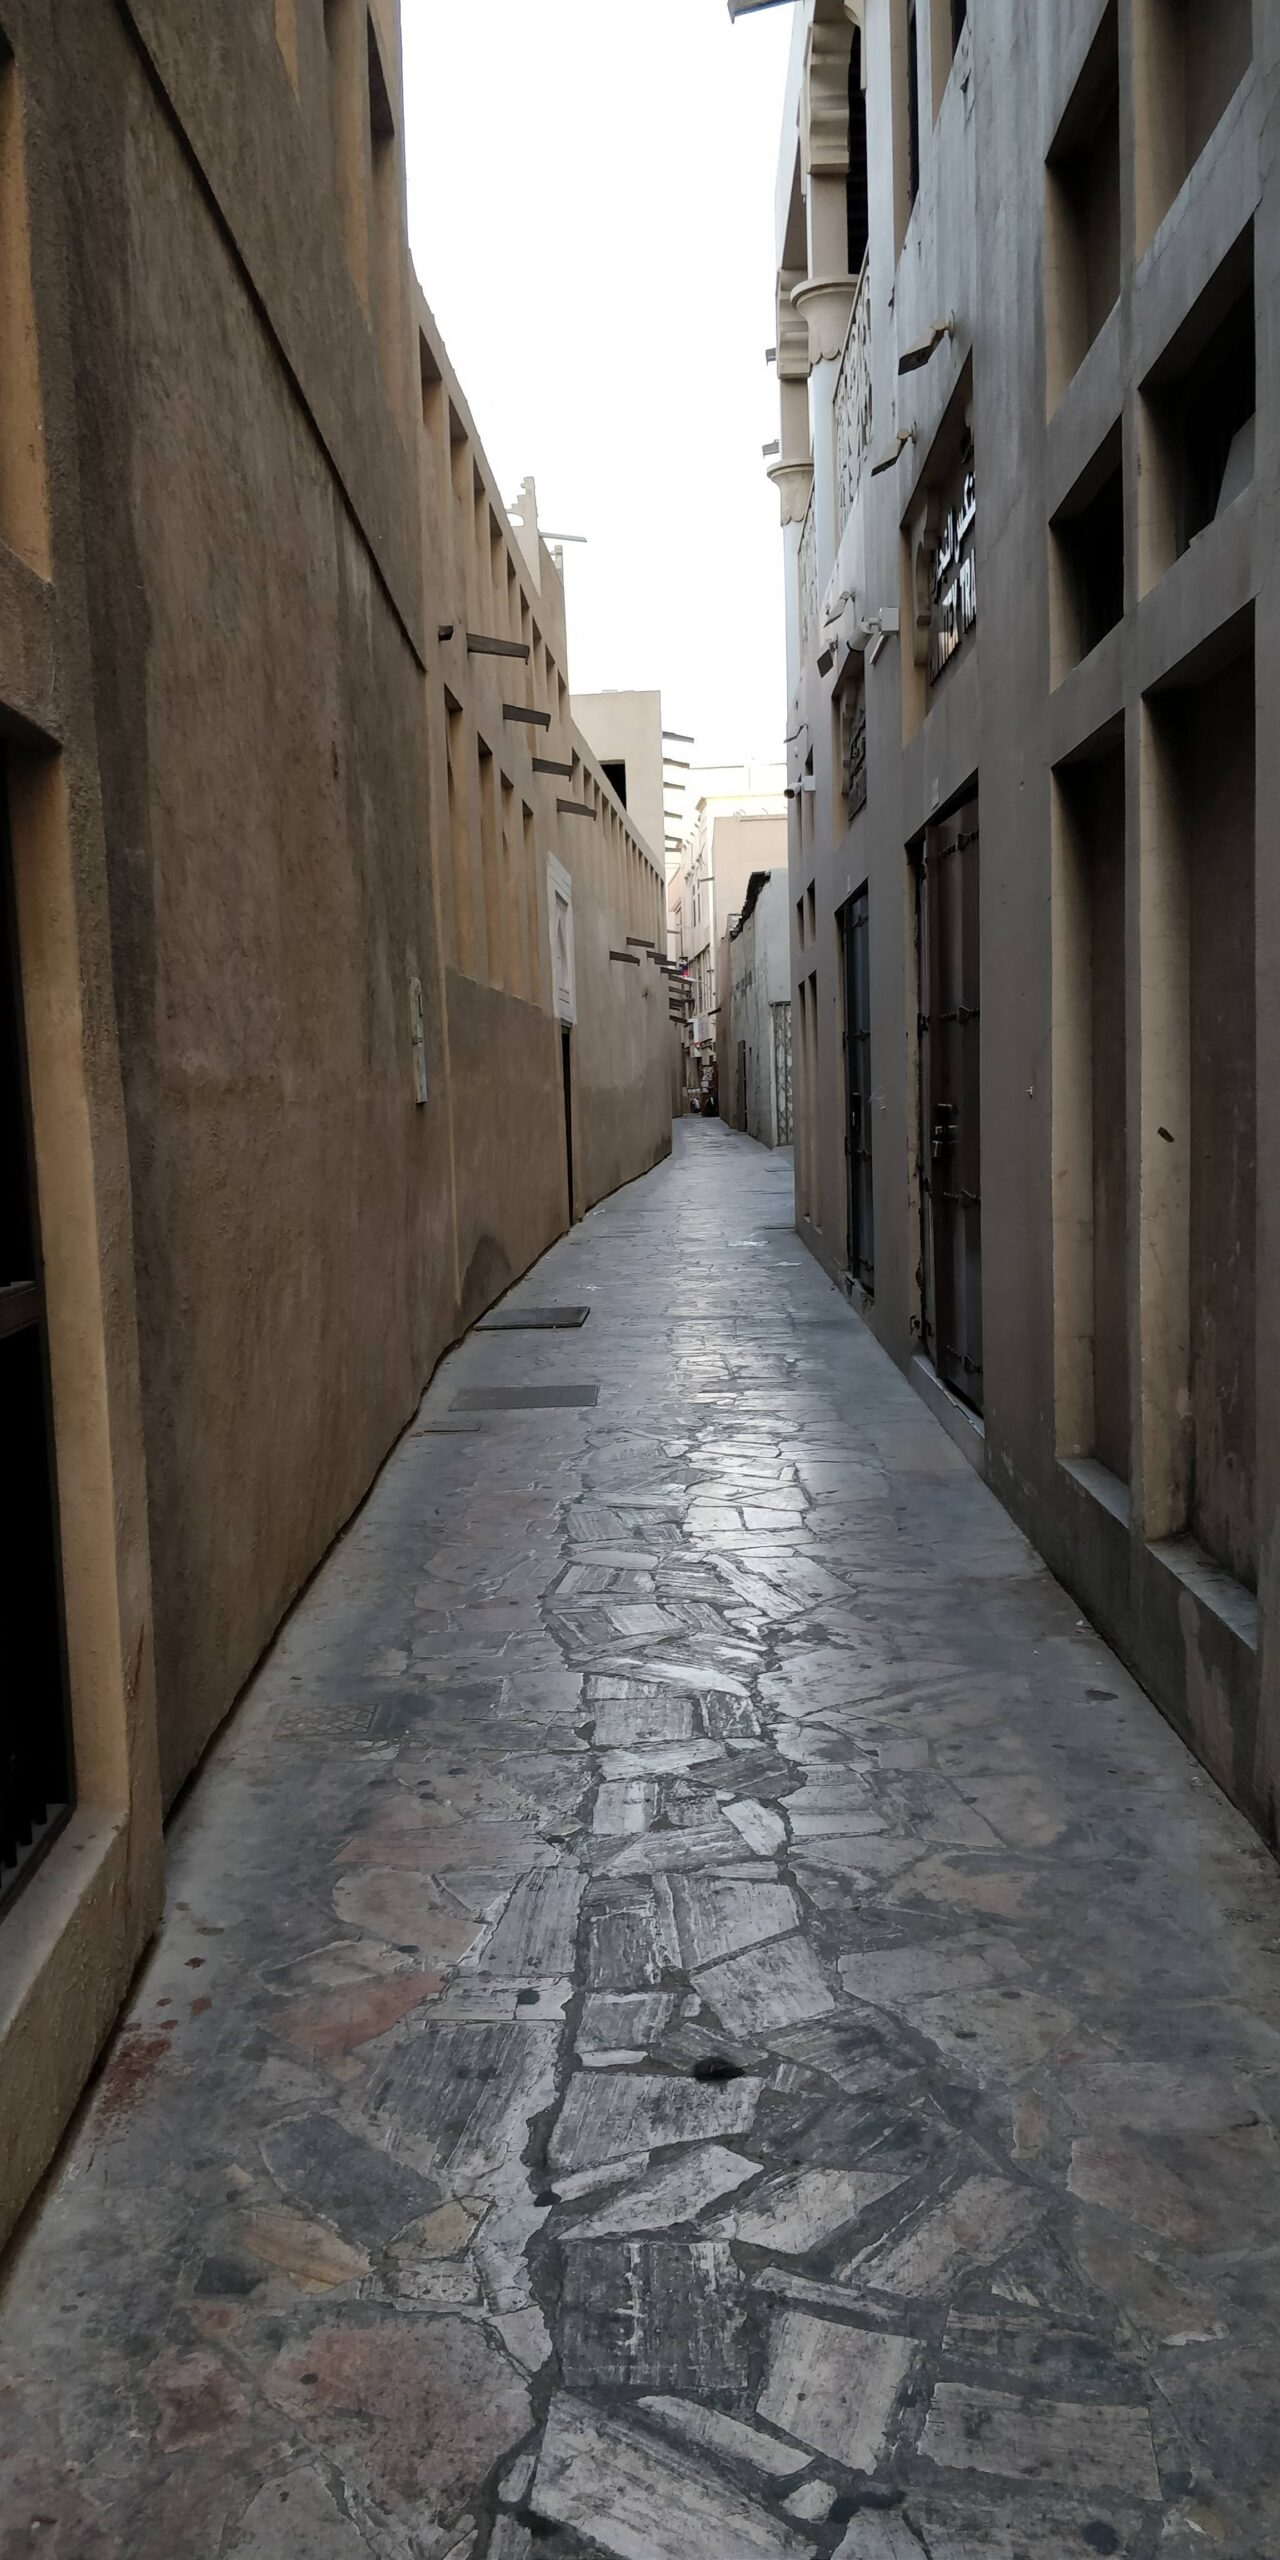 An Empty Alleyway in Deira near Old Heritage center and Bait Al Qadeem Restaurant